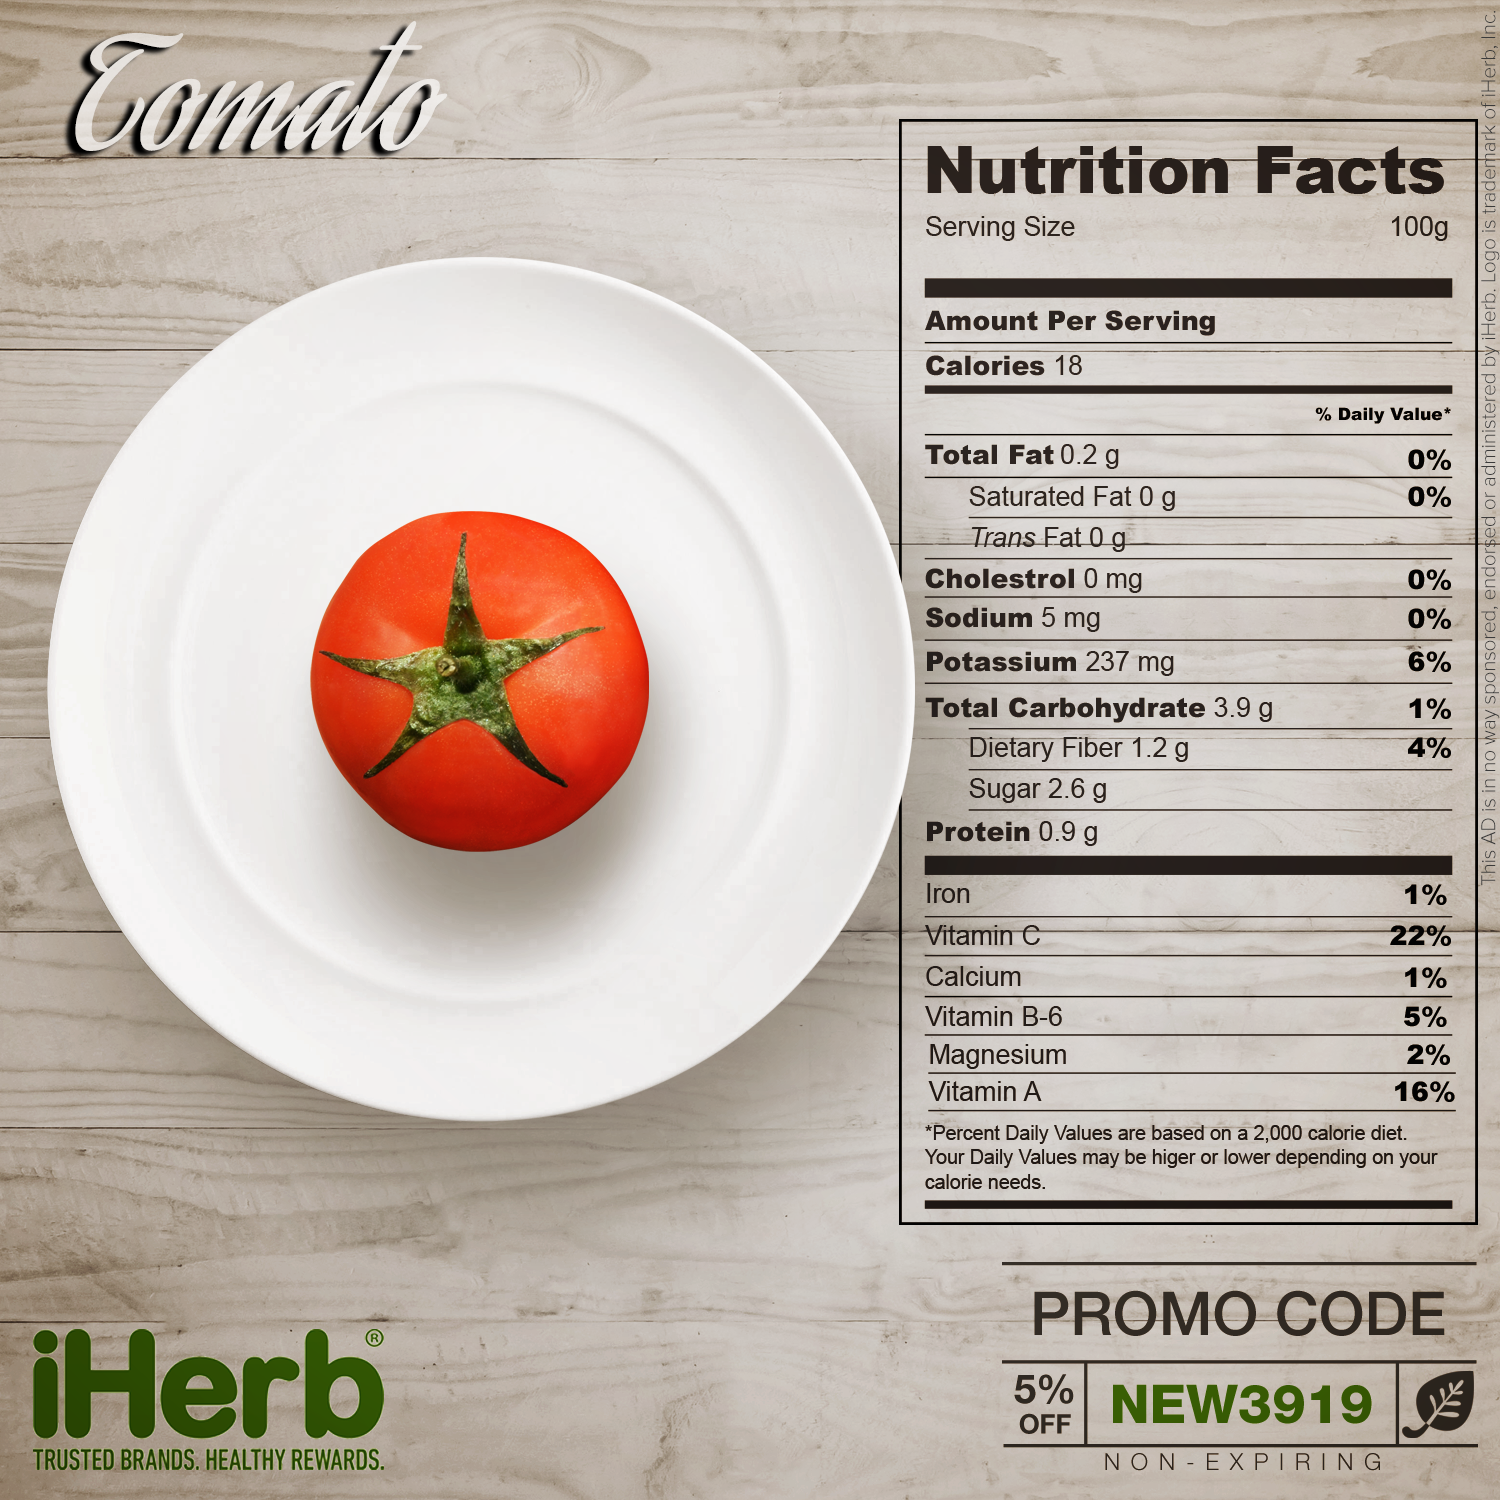 Nutrition News: Cherry Tomatoes Nutrition Facts 100g